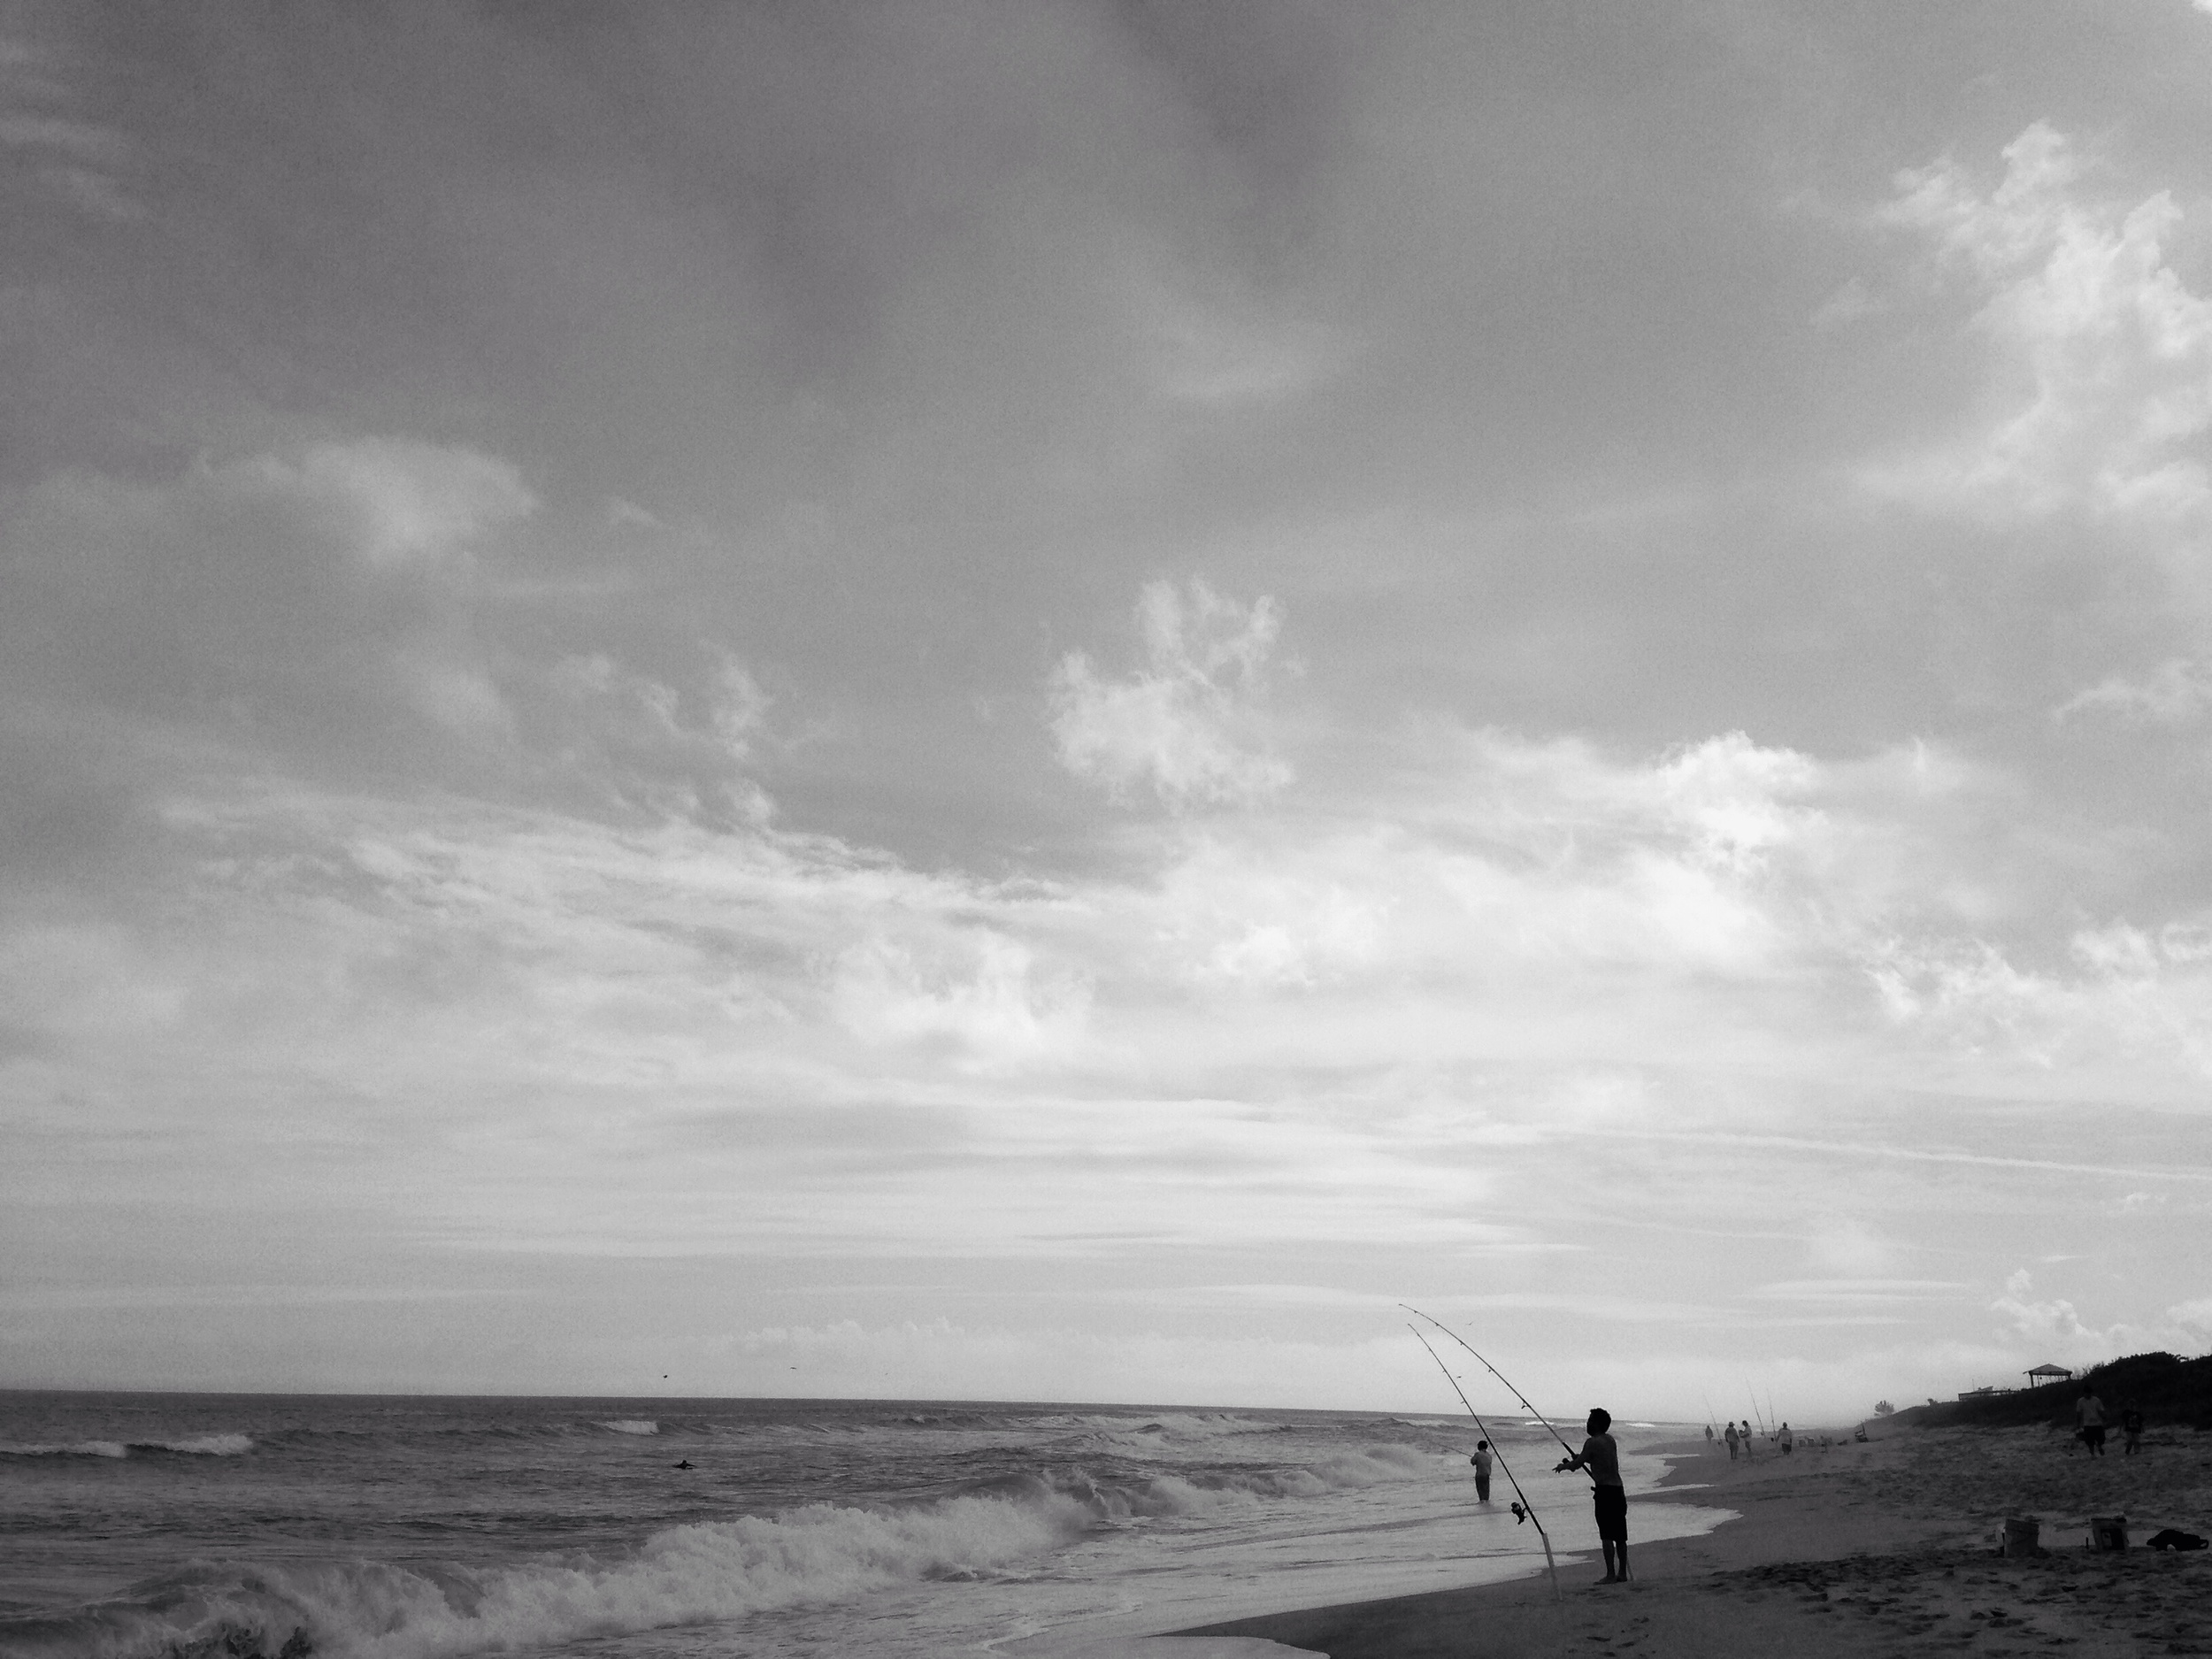 fisherman stacked the beach. I shot some photos of shore break and had to dodge the lines.